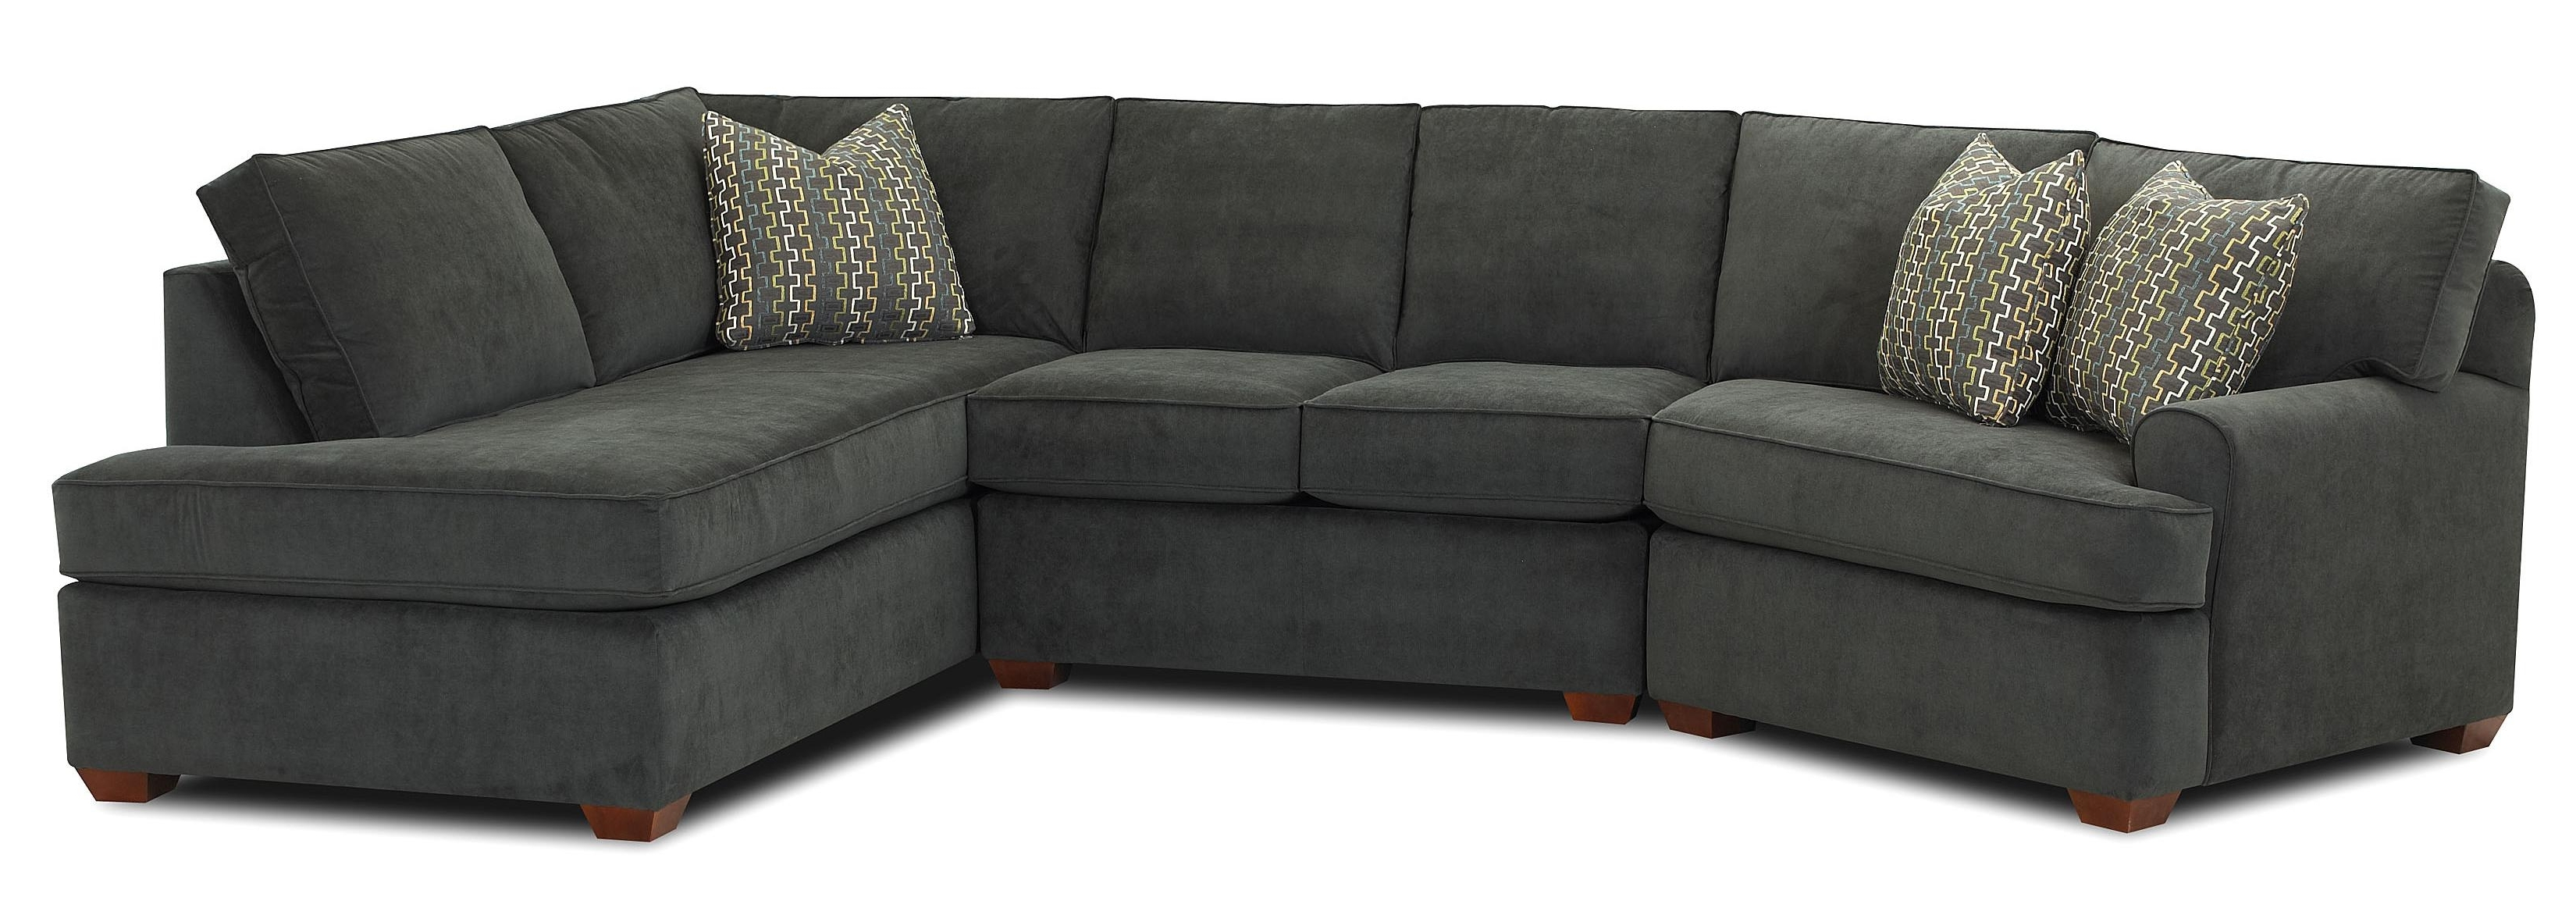 Widely Used Leather Loveseat With Chaise 72 Inch Sofa Sectional Sleeper Sofa Intended For Leather Couches With Chaise Lounge (View 15 of 15)